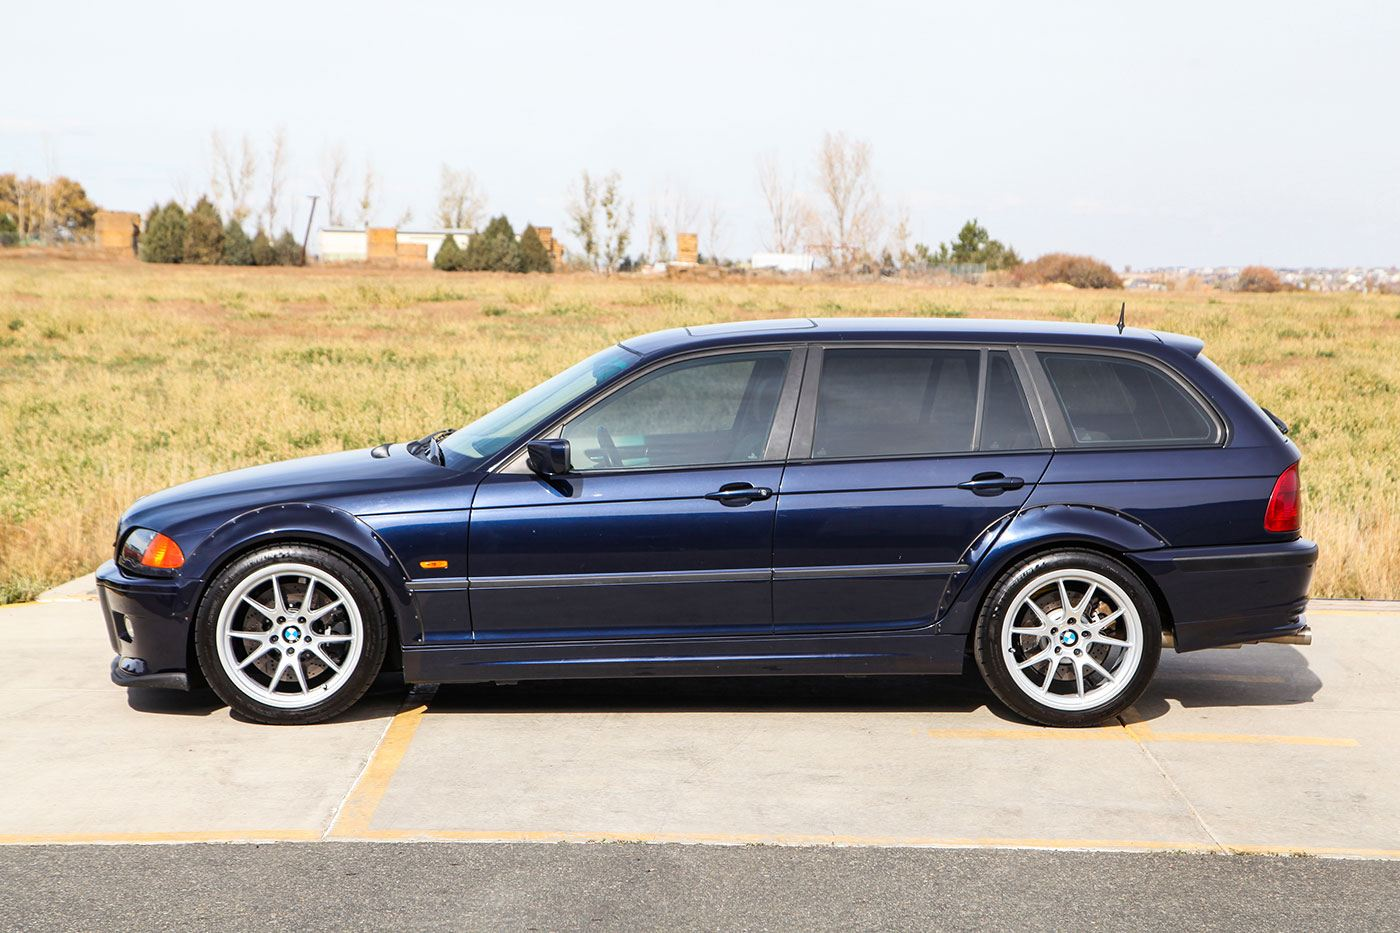 2001 BMW (E46) S54-Powered 325Xi Sport Wagon